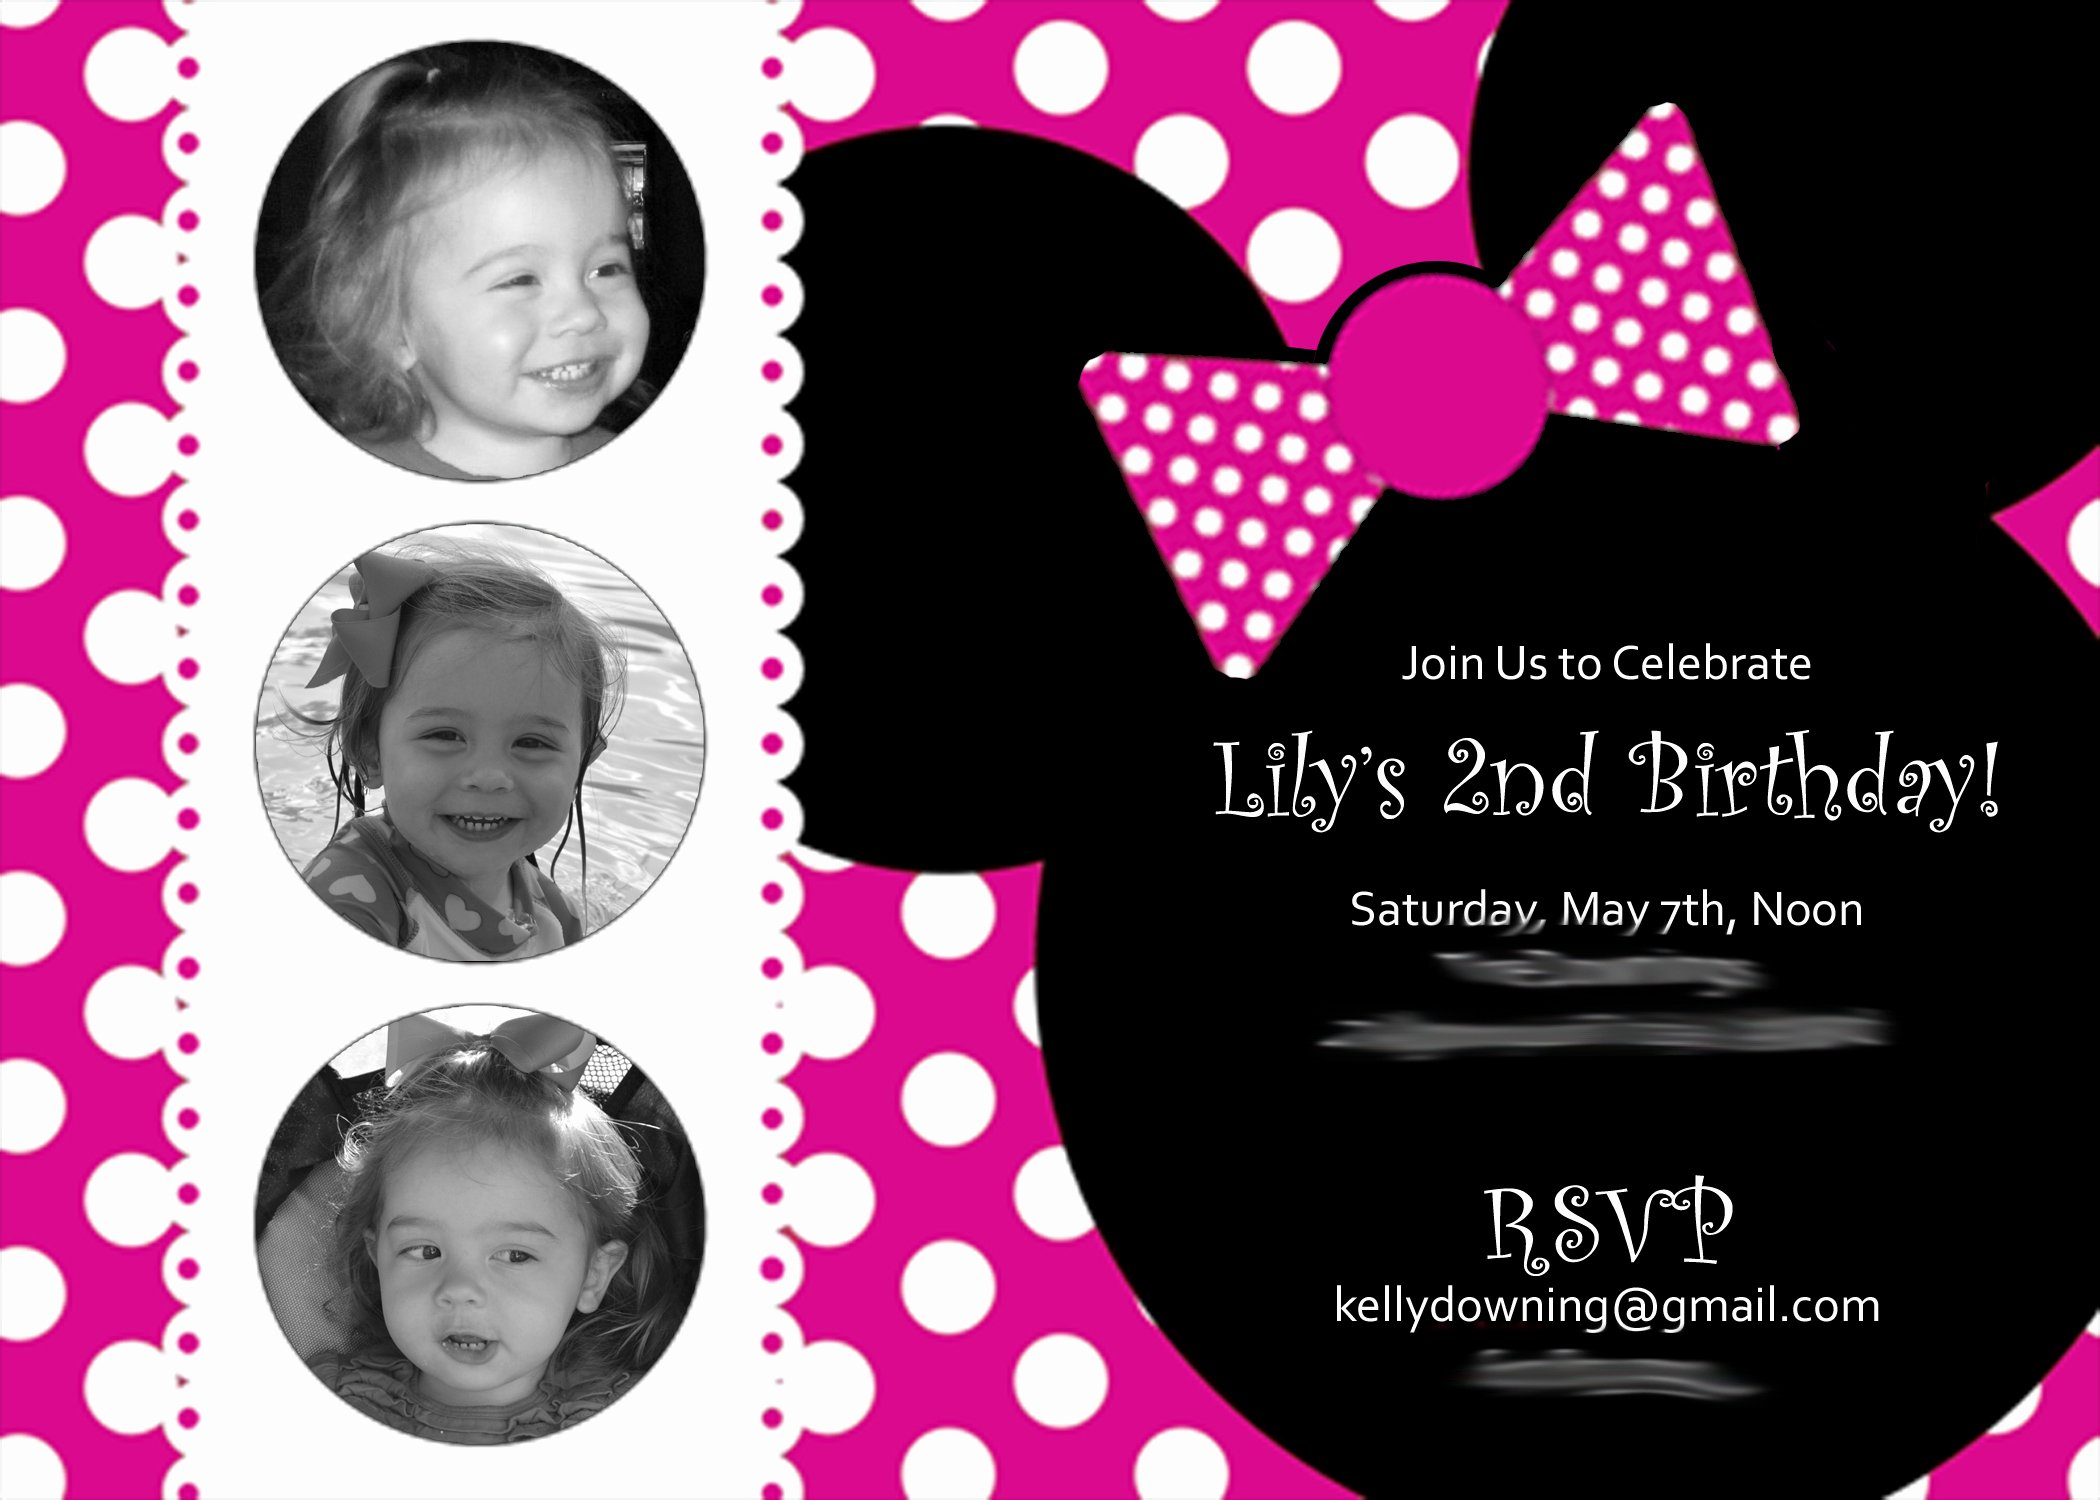 Minnie Mouse Birthday Invitations New A Two Year's Olds Mini Minnie Birthday Party